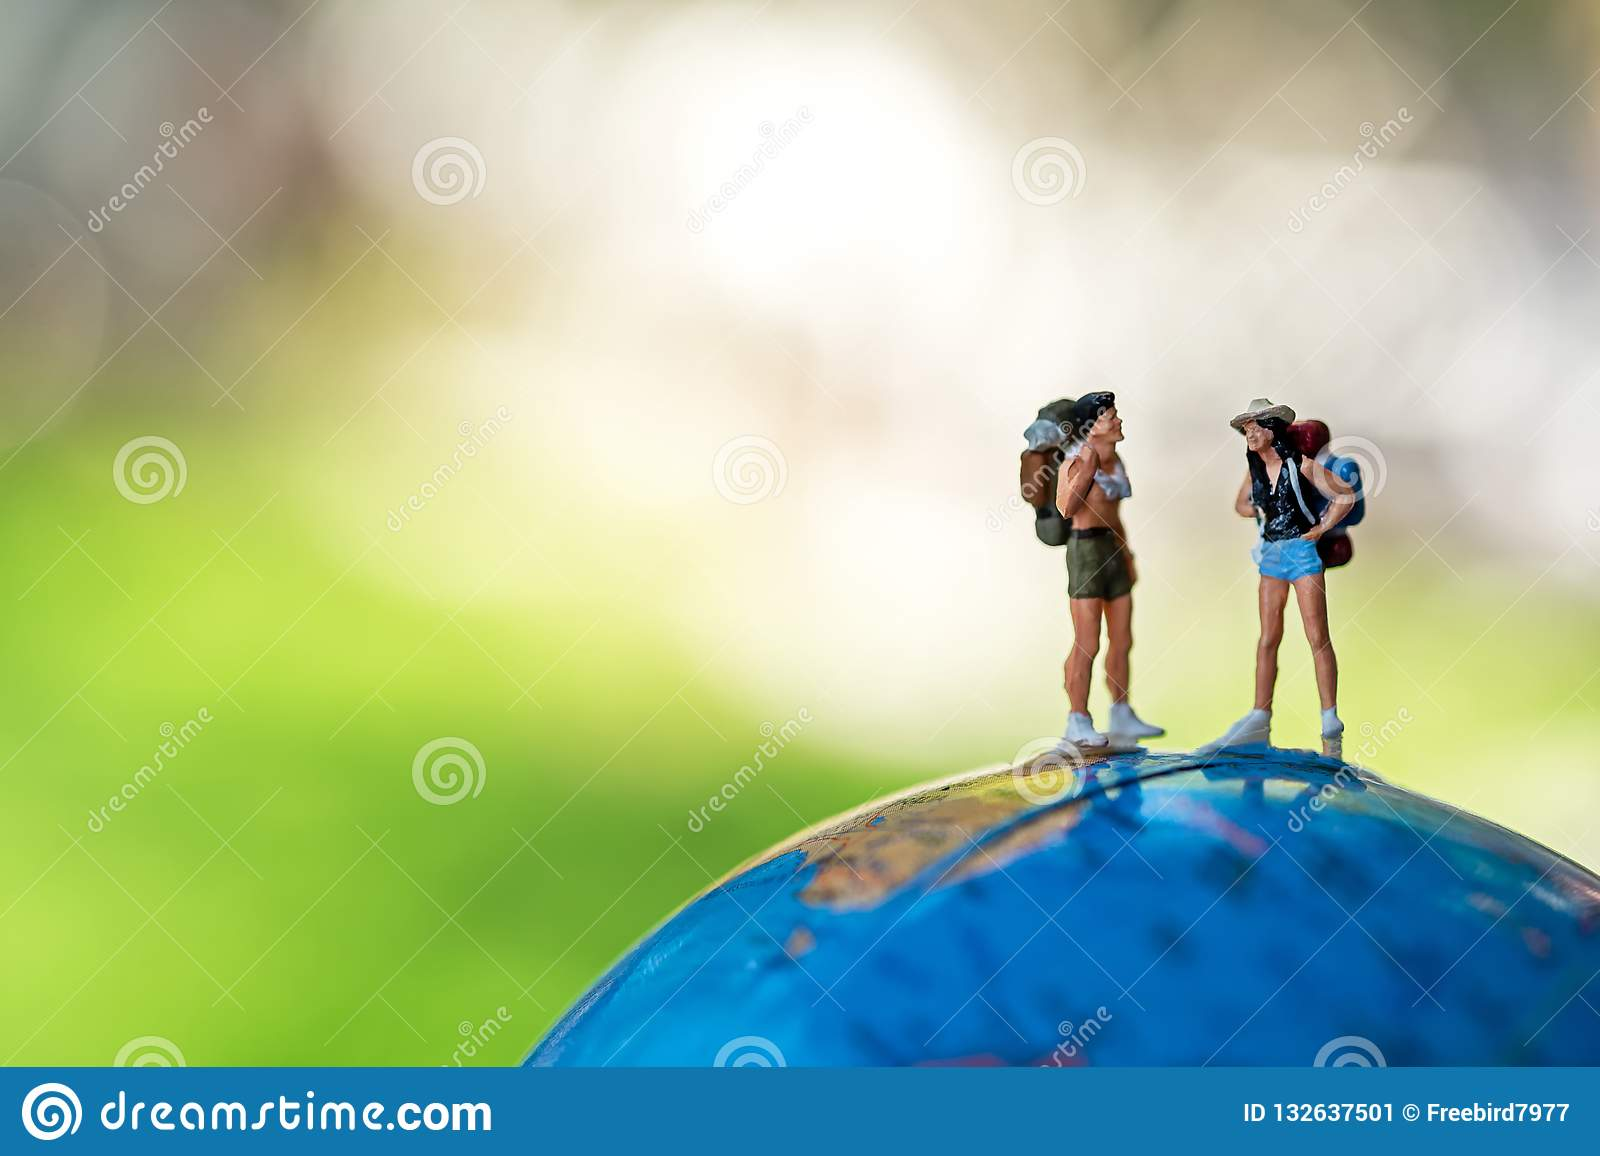 Miniature traveler and hiker backpack standing on the globe for the tourist and adventure around the world for vacations trip.